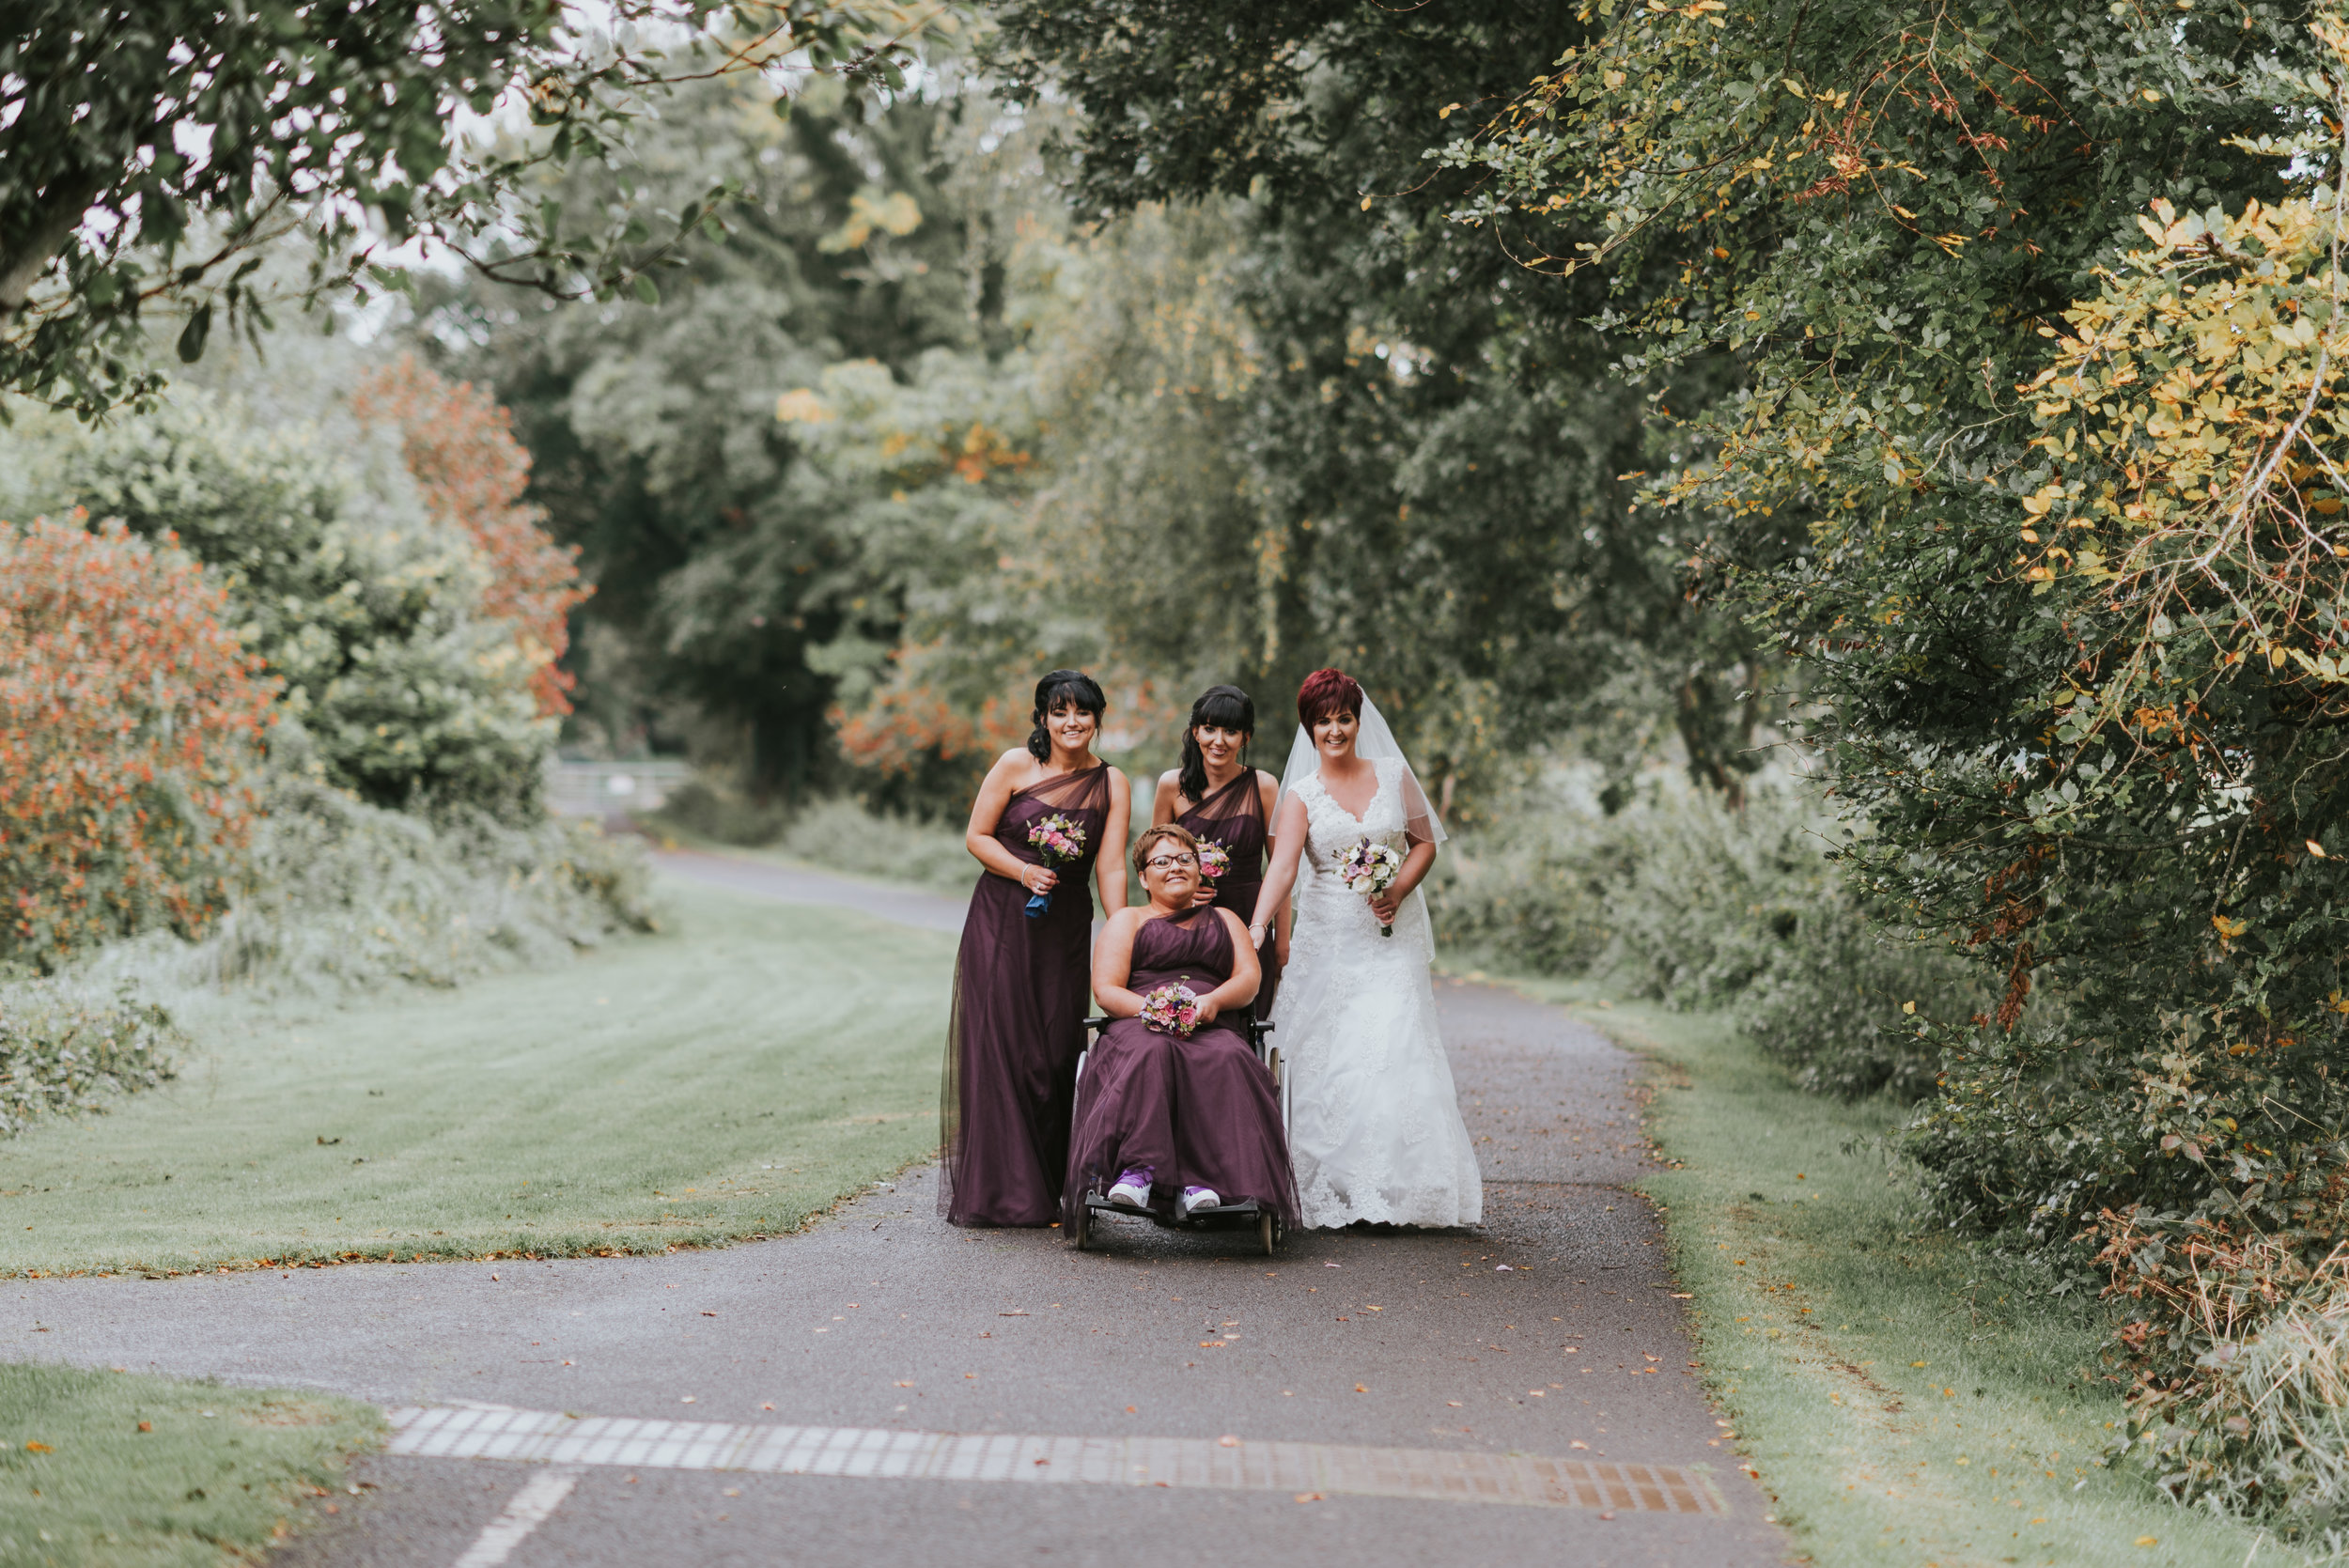 Roe Park Wedding Photographer Pure Photo N.I bride and bridesmaids